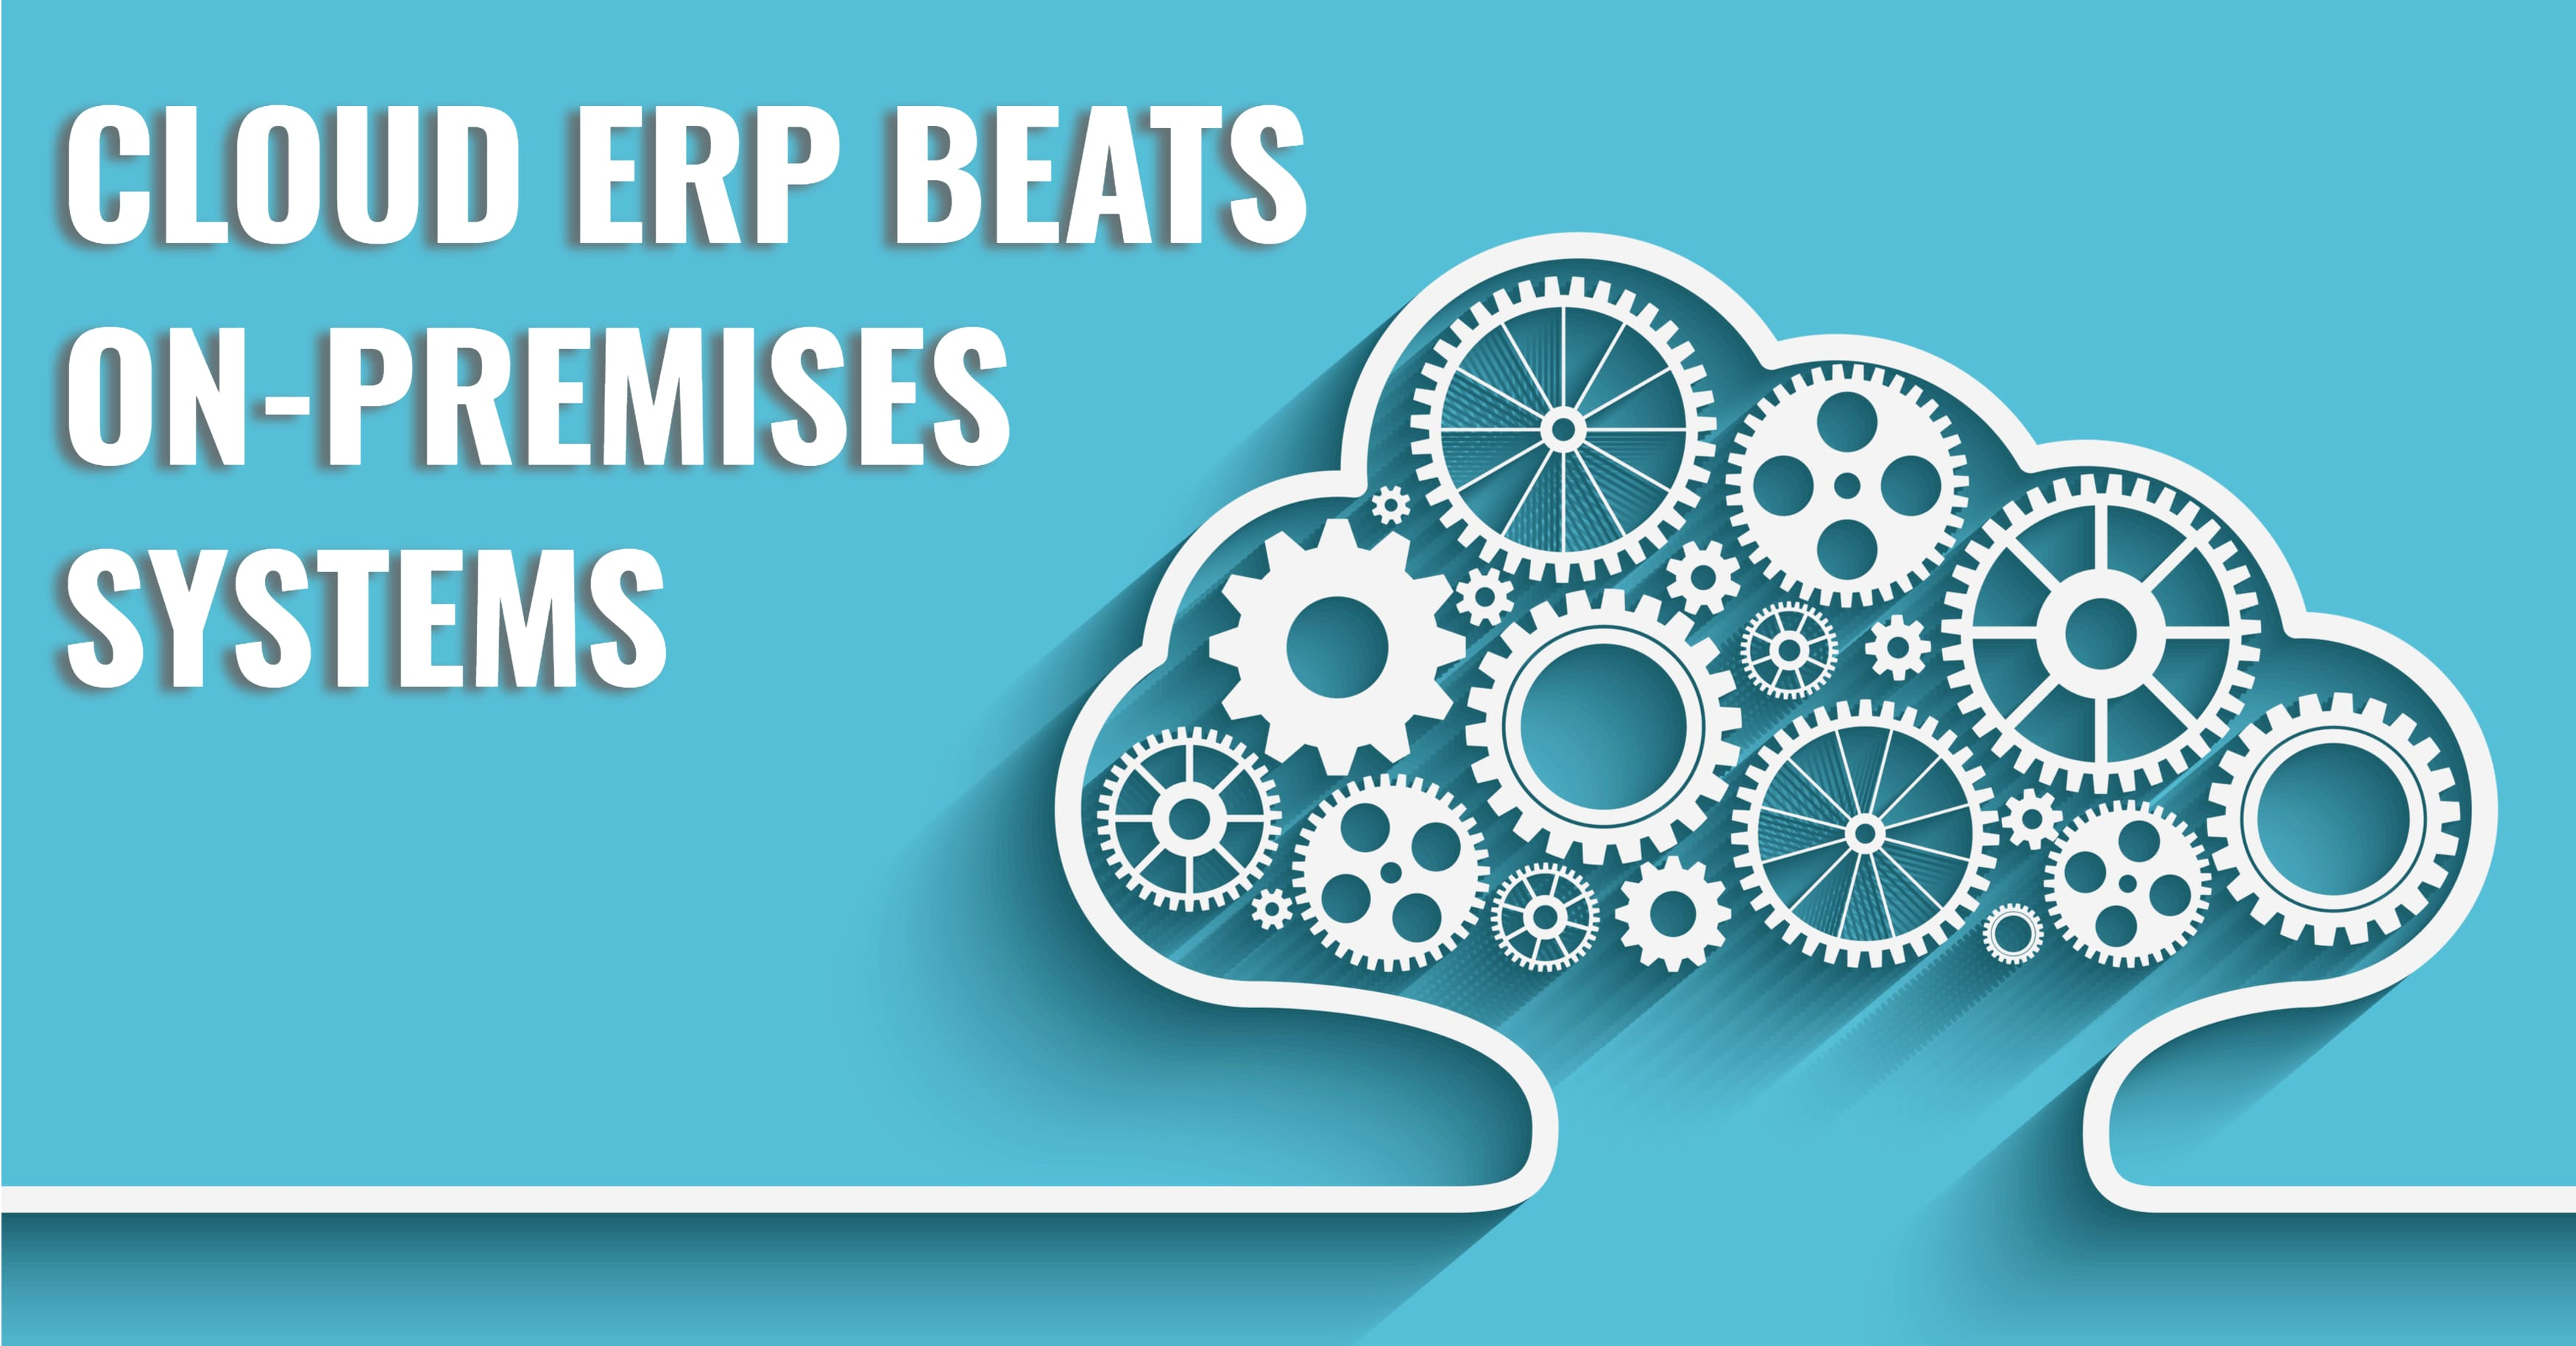 How Does Cloud ERP Beat On-Premises Systems?